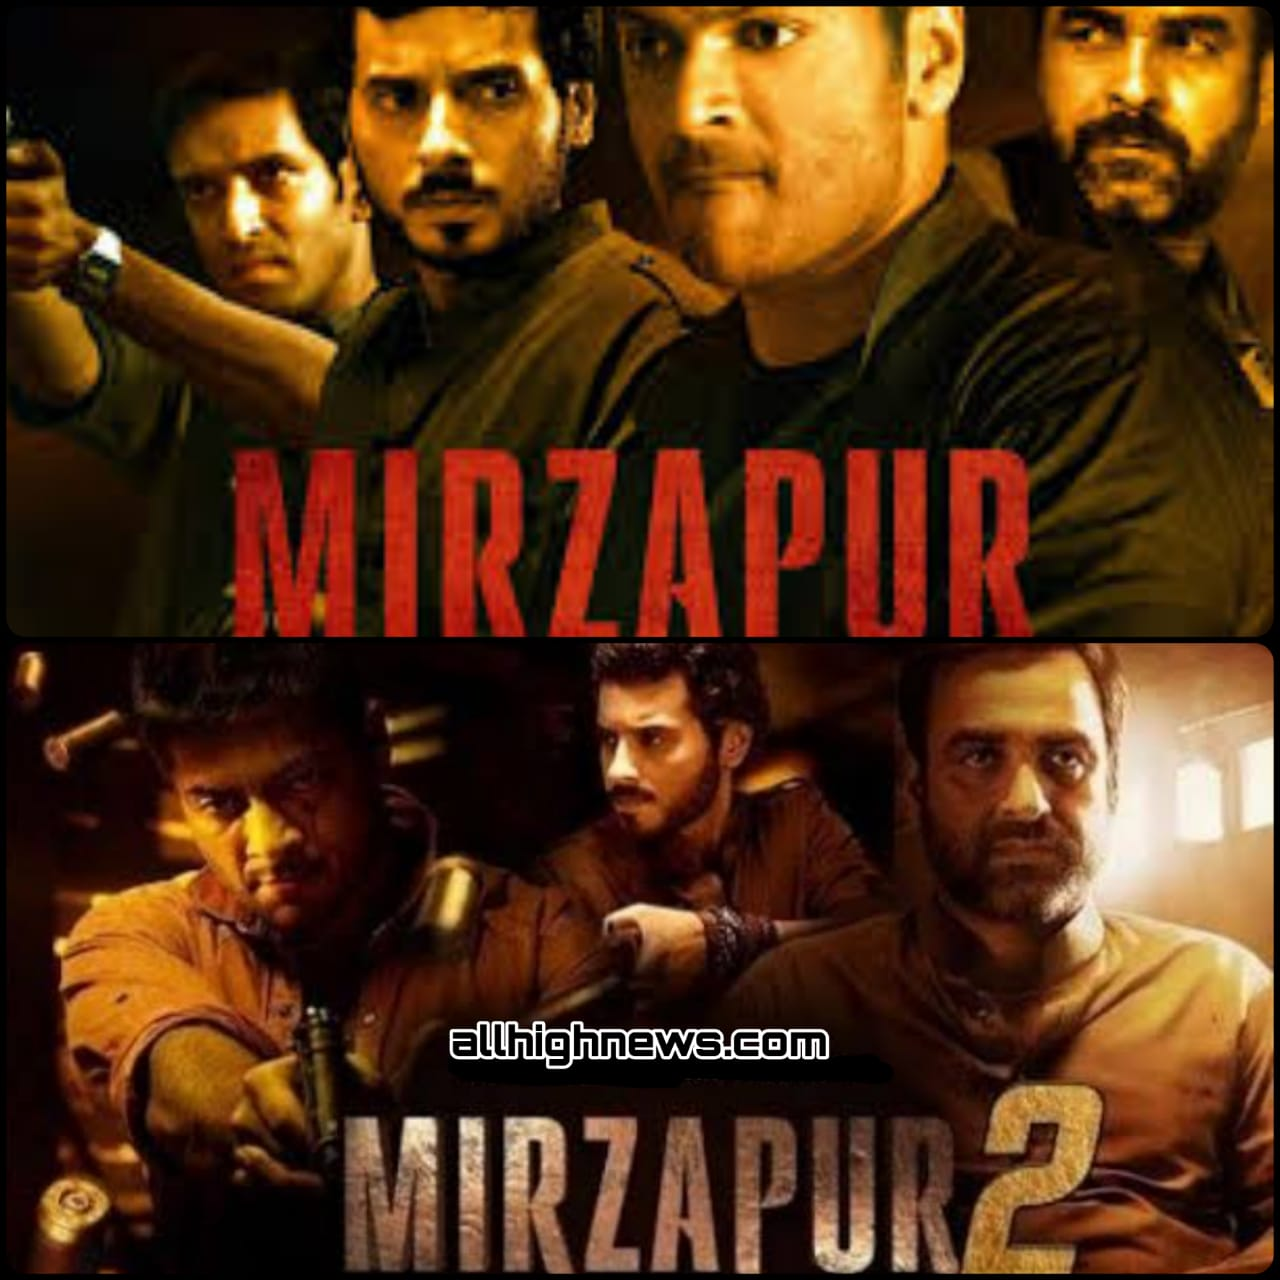 mirzapur2 download free